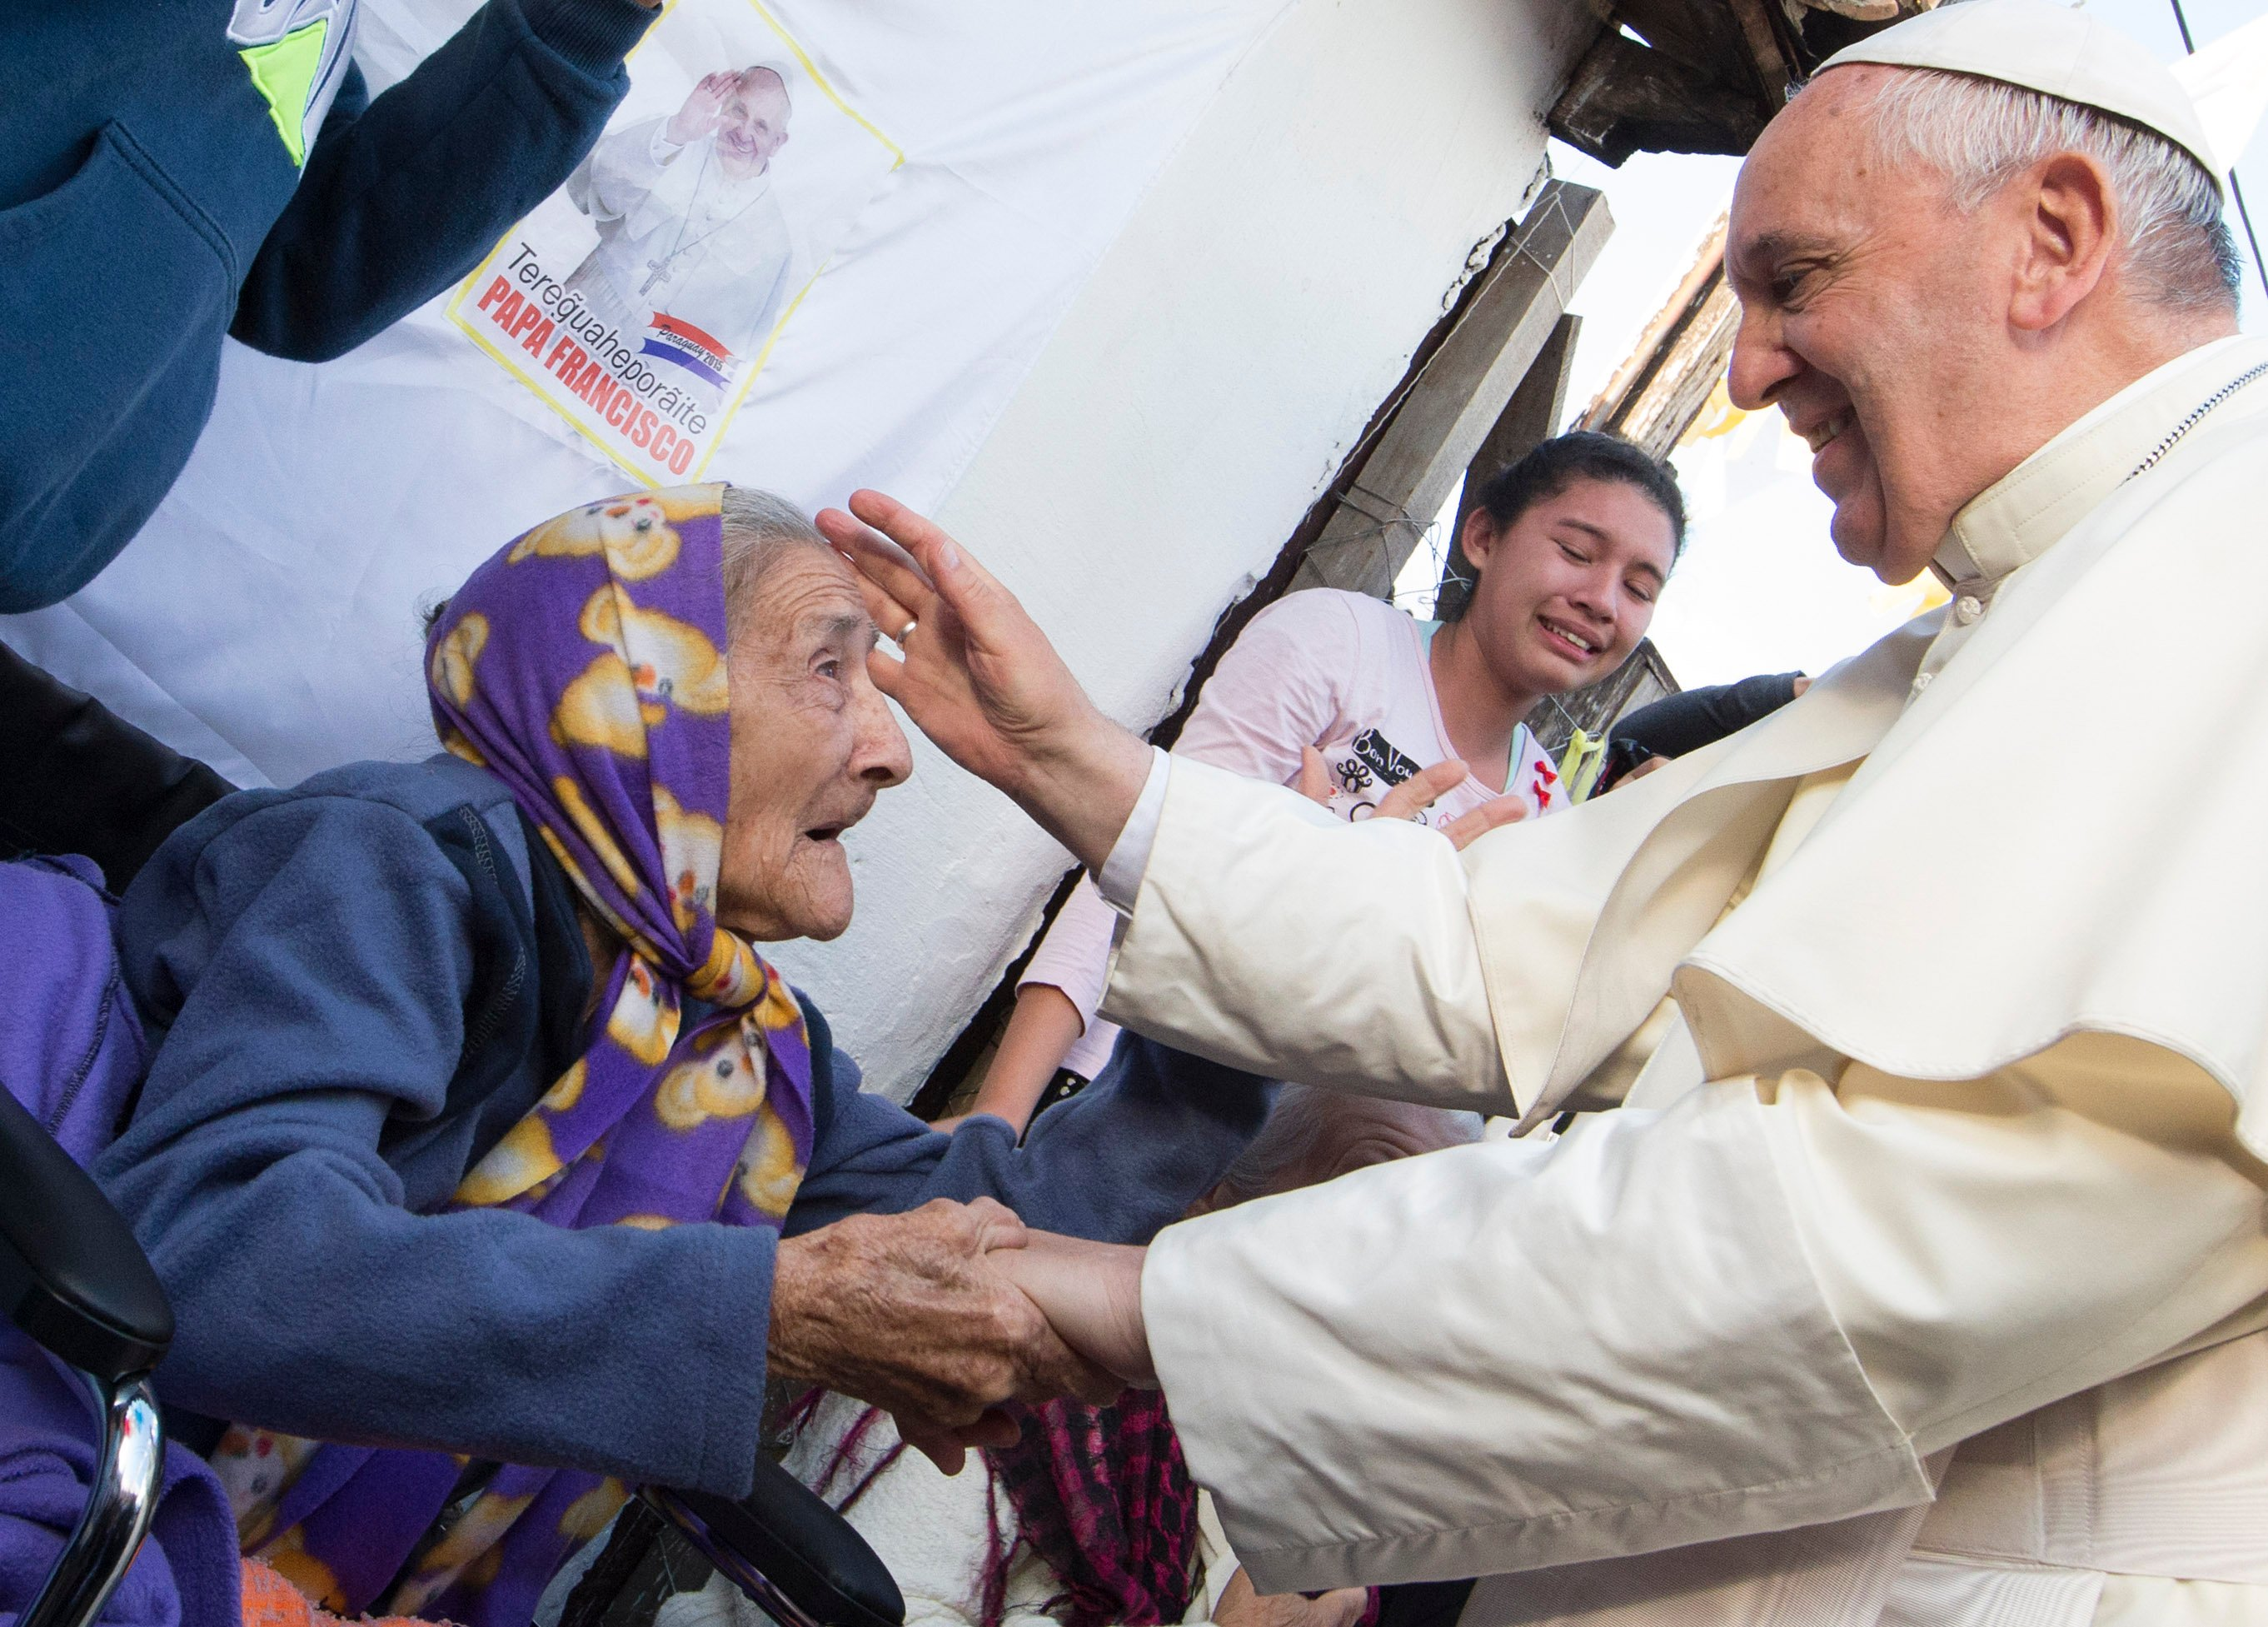 Lent with Pope Francis: True Concern for the Poor